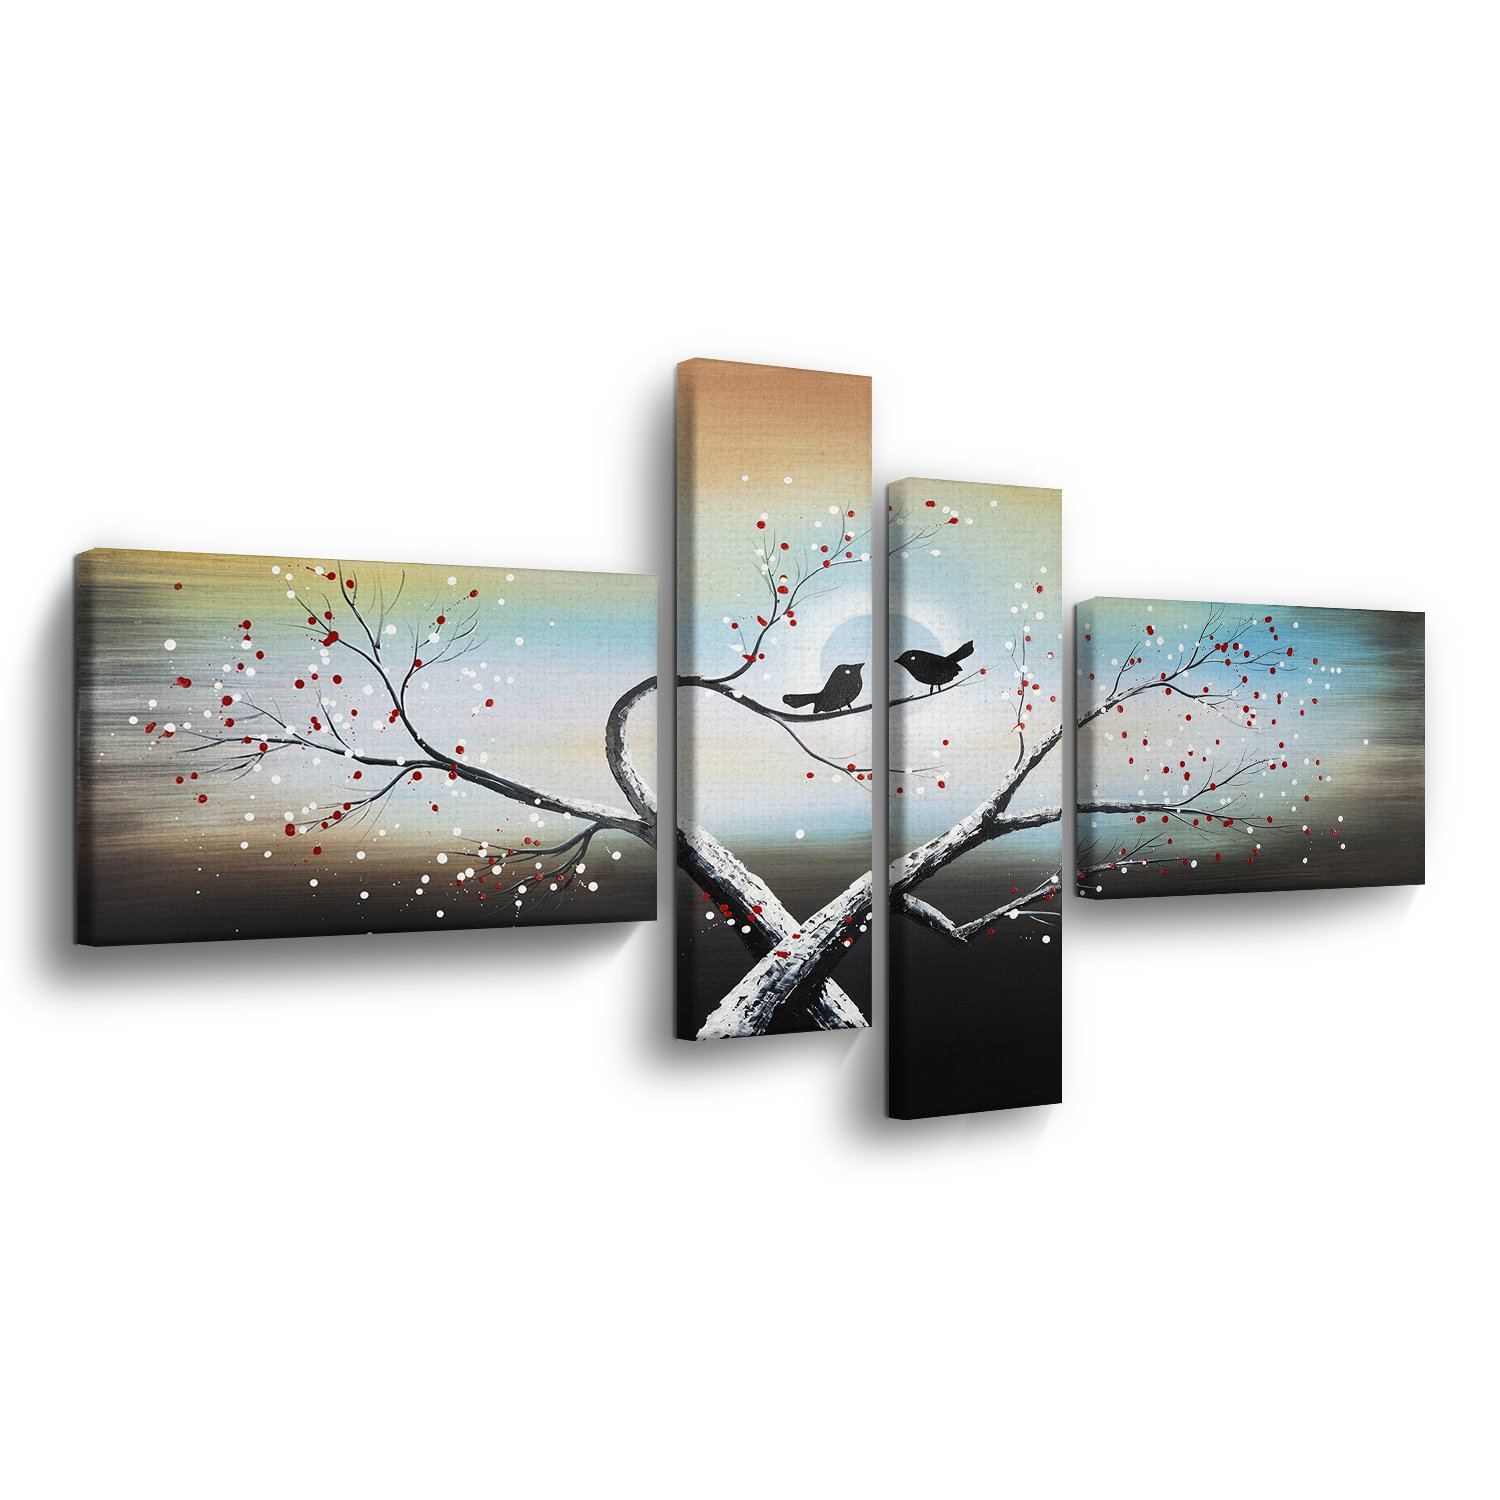 4 Panels Love Birds on Tree Branch Oil Paintings Animals Landscape Giclee Canvas Wall Arts Prints Modern Contemporary Artwork for Home Decor,Stretched and Framed,Large Size